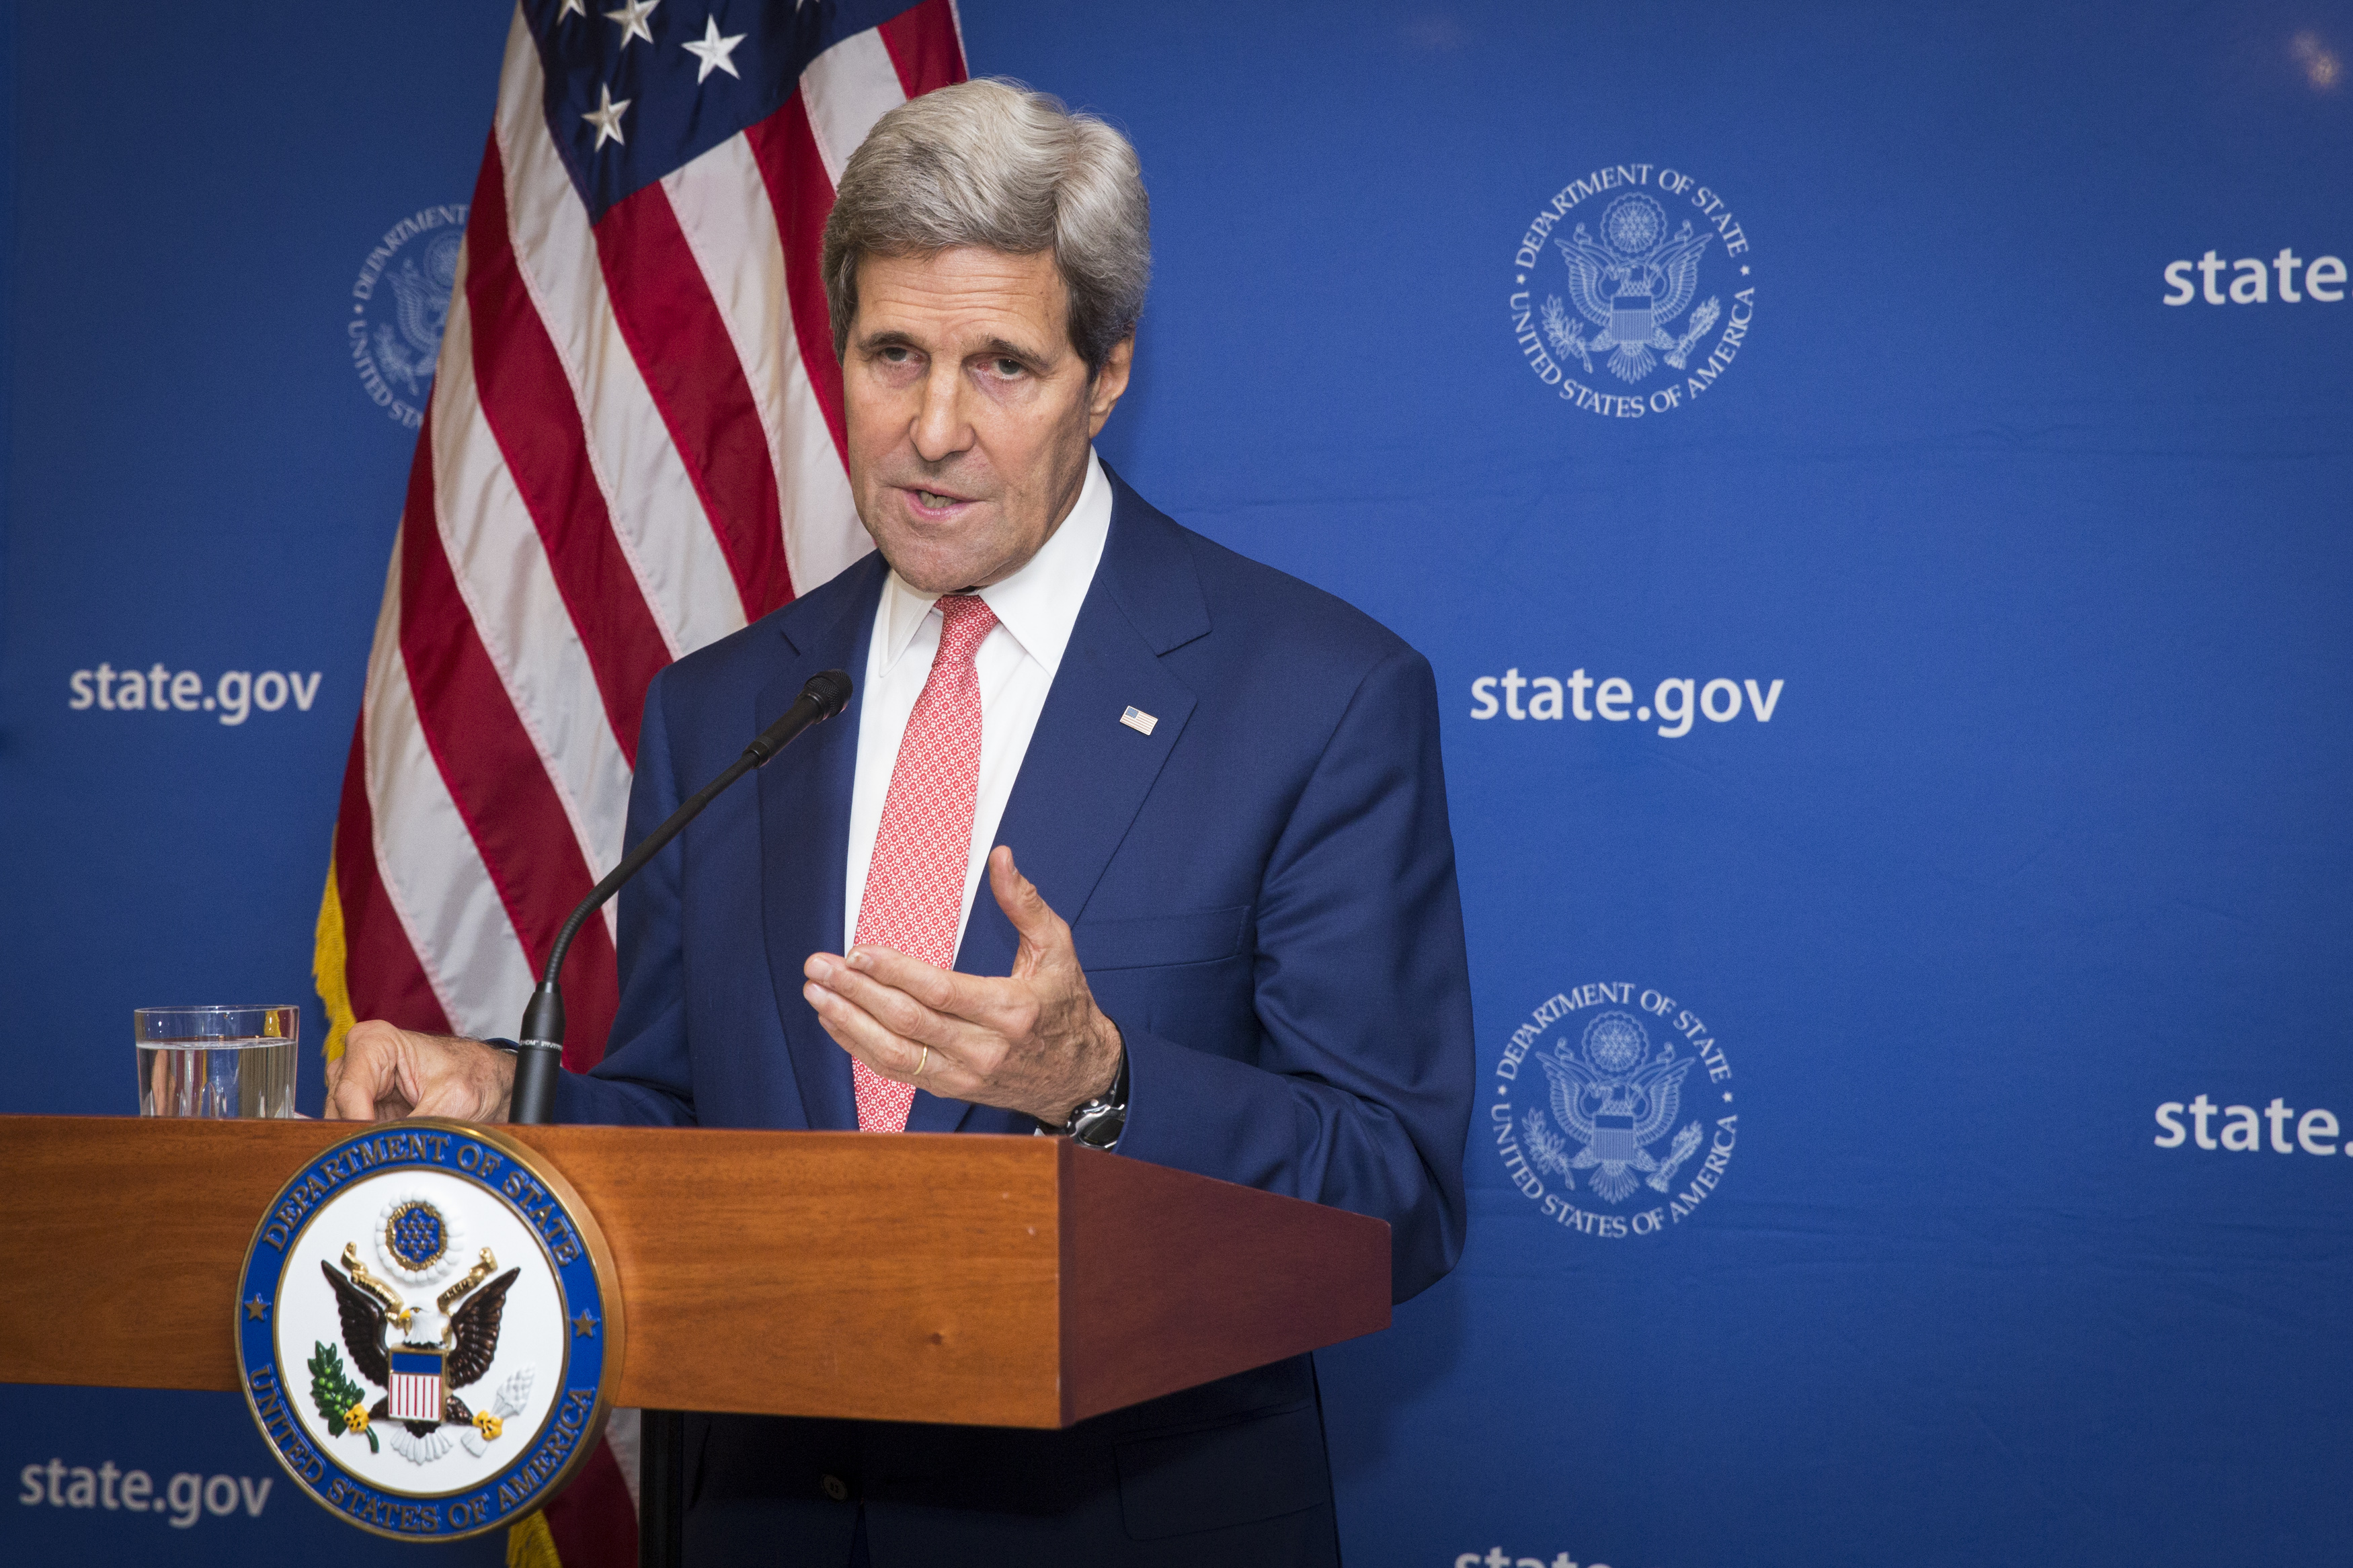 U.S. Secretary of State John Kerry announces a 72-hour humanitarian cease-fire beginning Friday between Israel and Hamas, in New Delhi, India, on August 1, 2014.